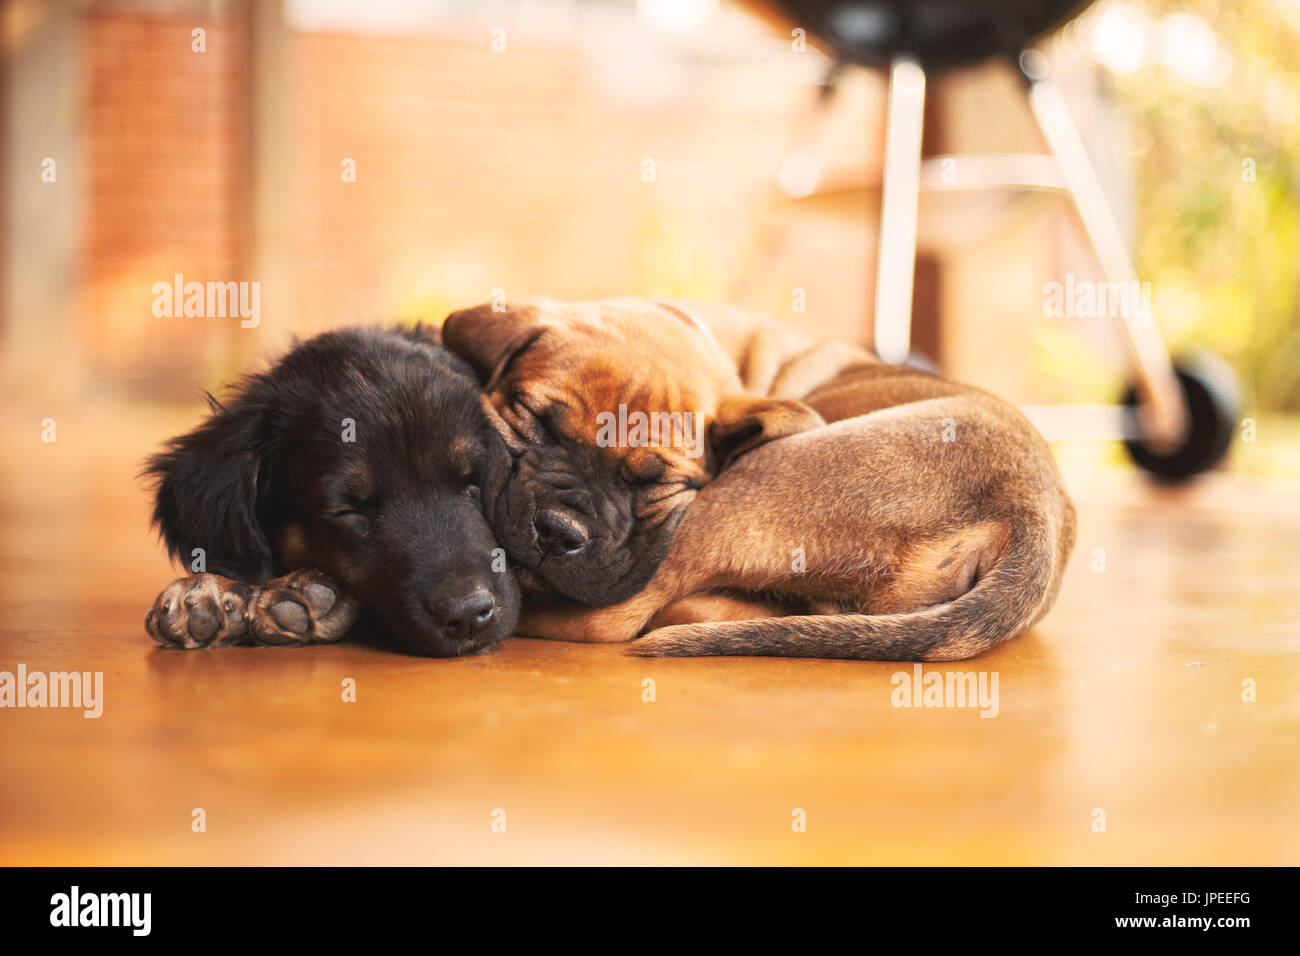 A Boerboel and a German Shepherd x Lab cuddling together. - Stock Image